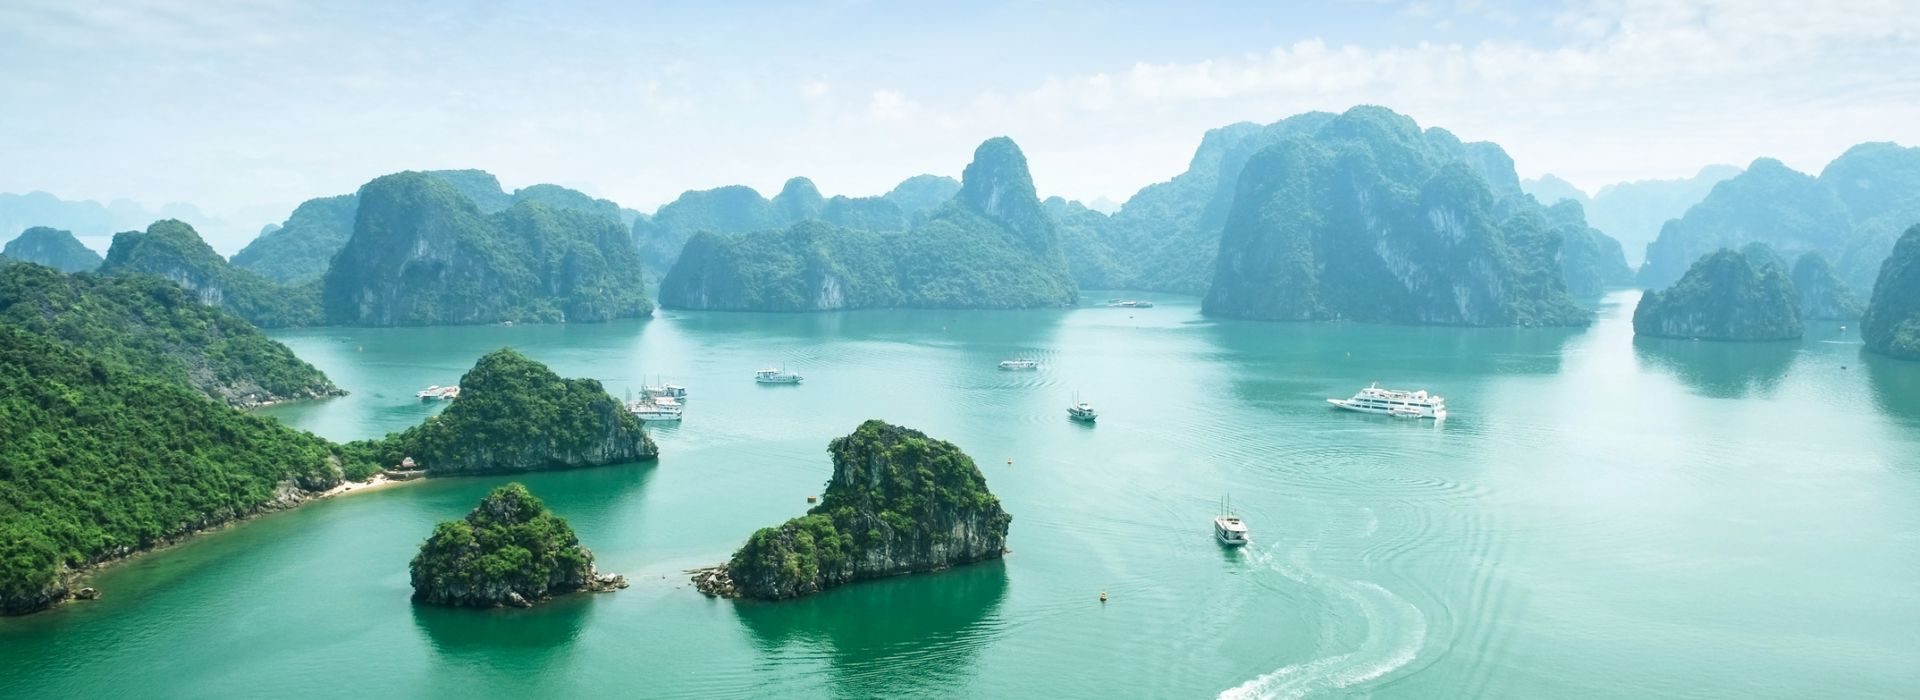 Boat tours, water sports and marine wildlife in Ninh Binh